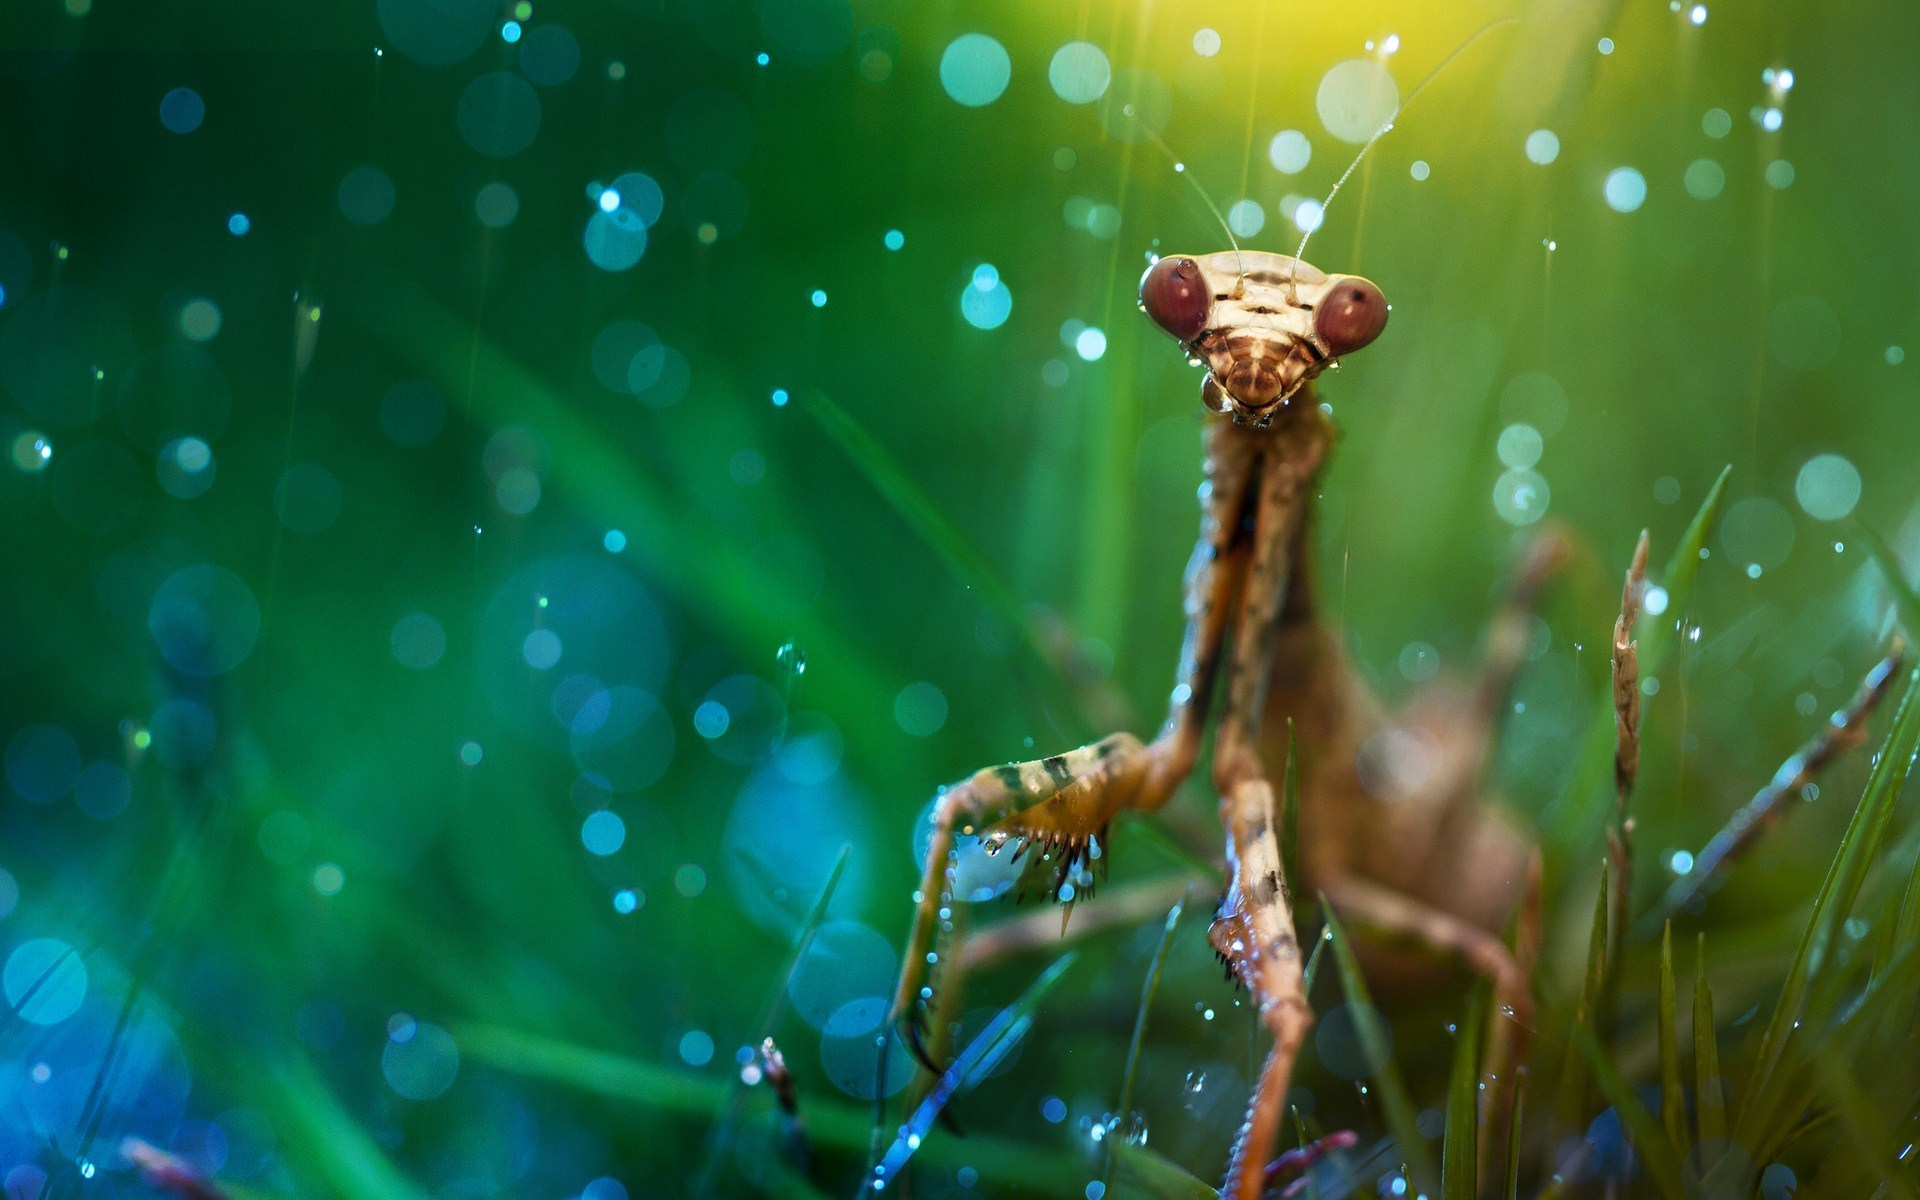 Insect Mantis Grass Drops Nature